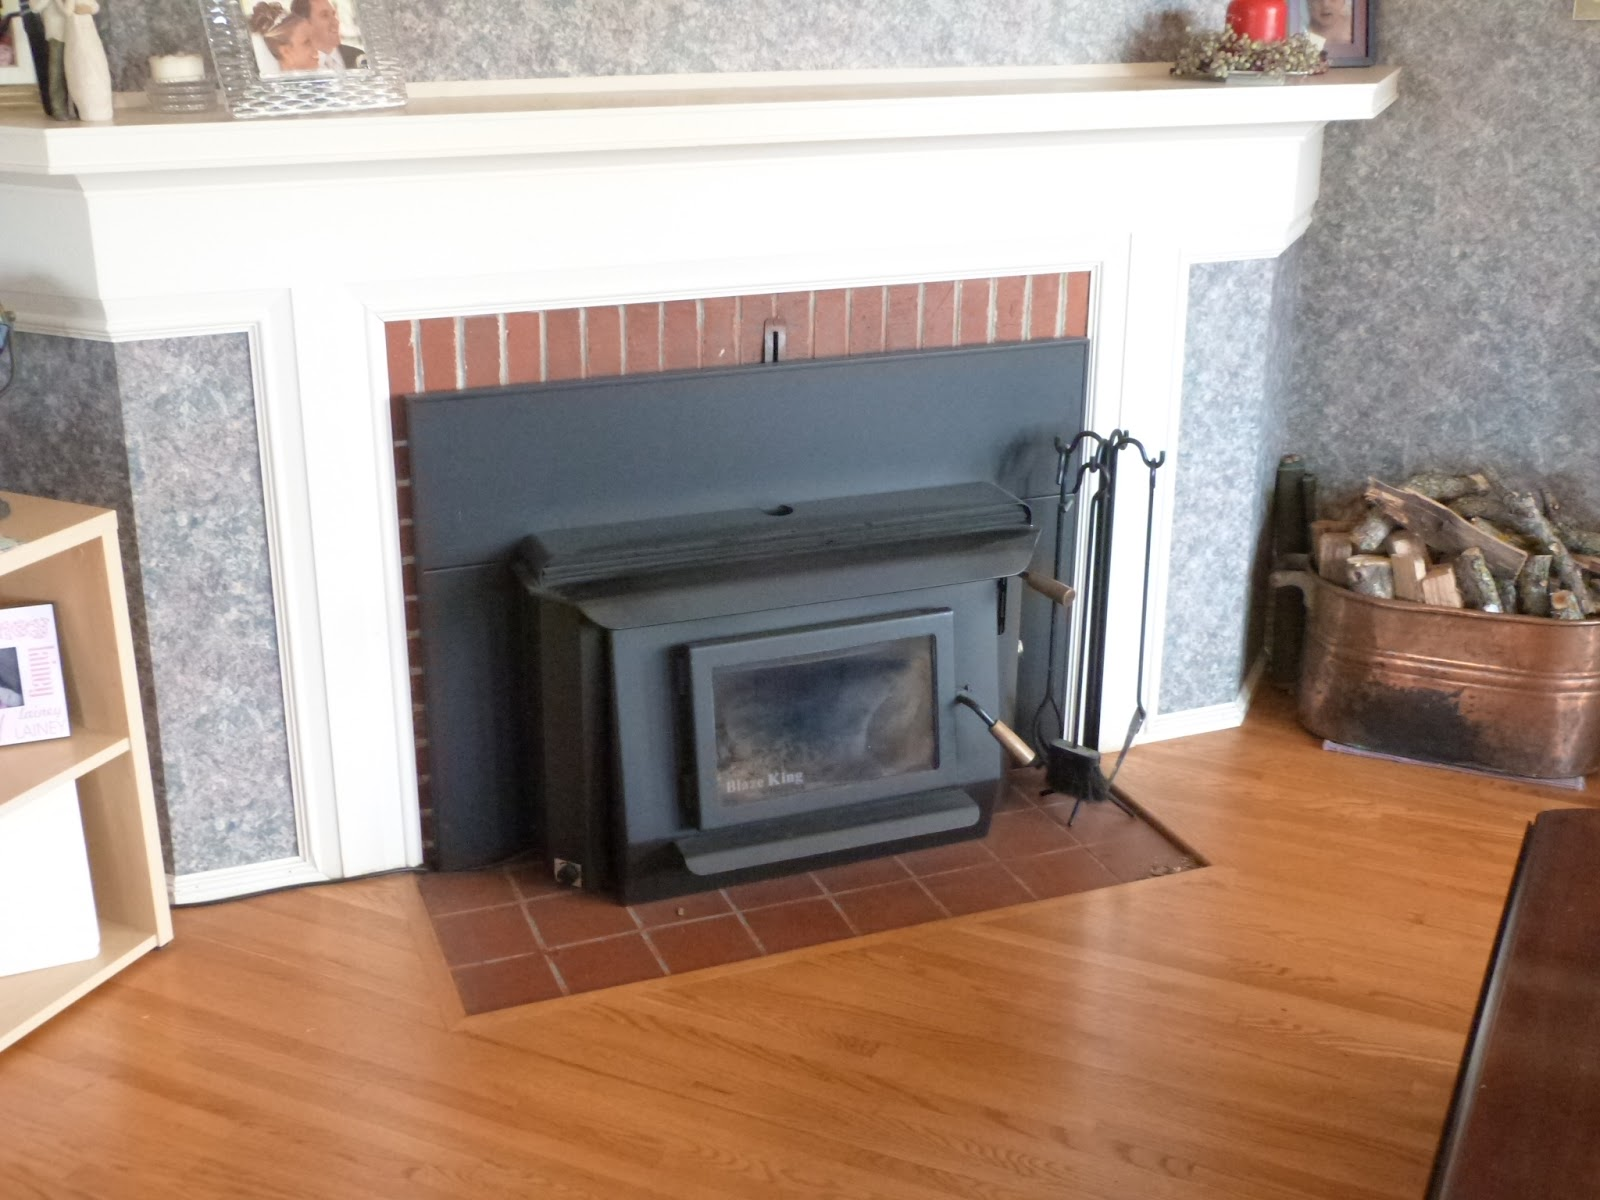 blaze king fireplace inserts. Blaze King Princess PI1010A First Fire Of The Year  Blyberg Home For Sale